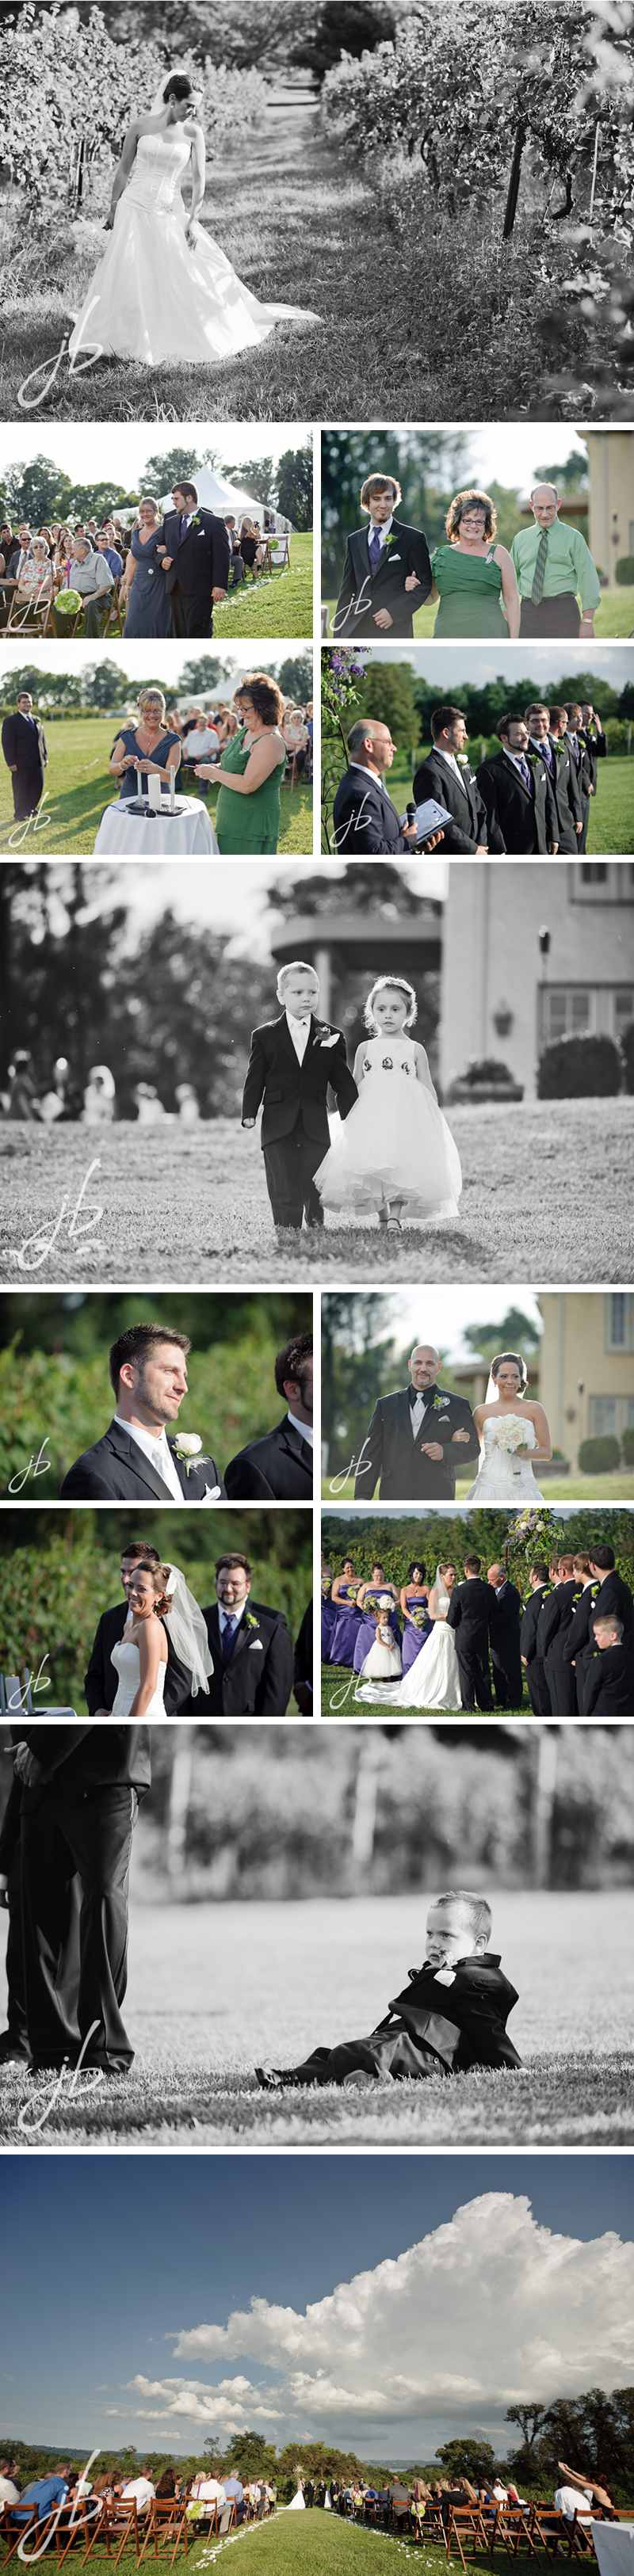 Wrightsville PA wedding photography by Jeremy Bischoff Photography 004